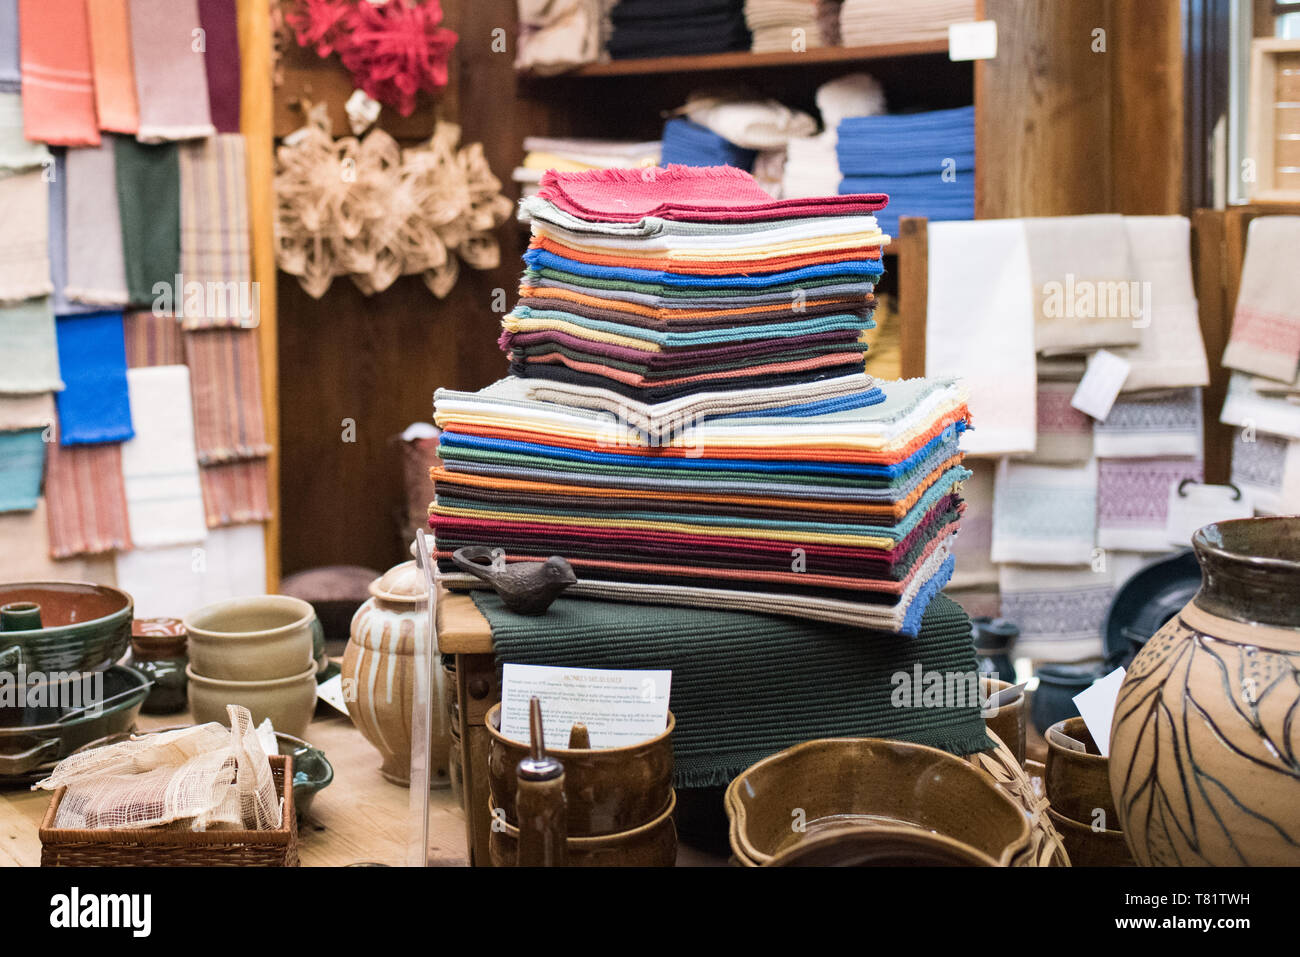 Arts and crafts are, many of which are made by the Women Weavers of the Crossnore School, are sold in the store to support the children's home. - Stock Image